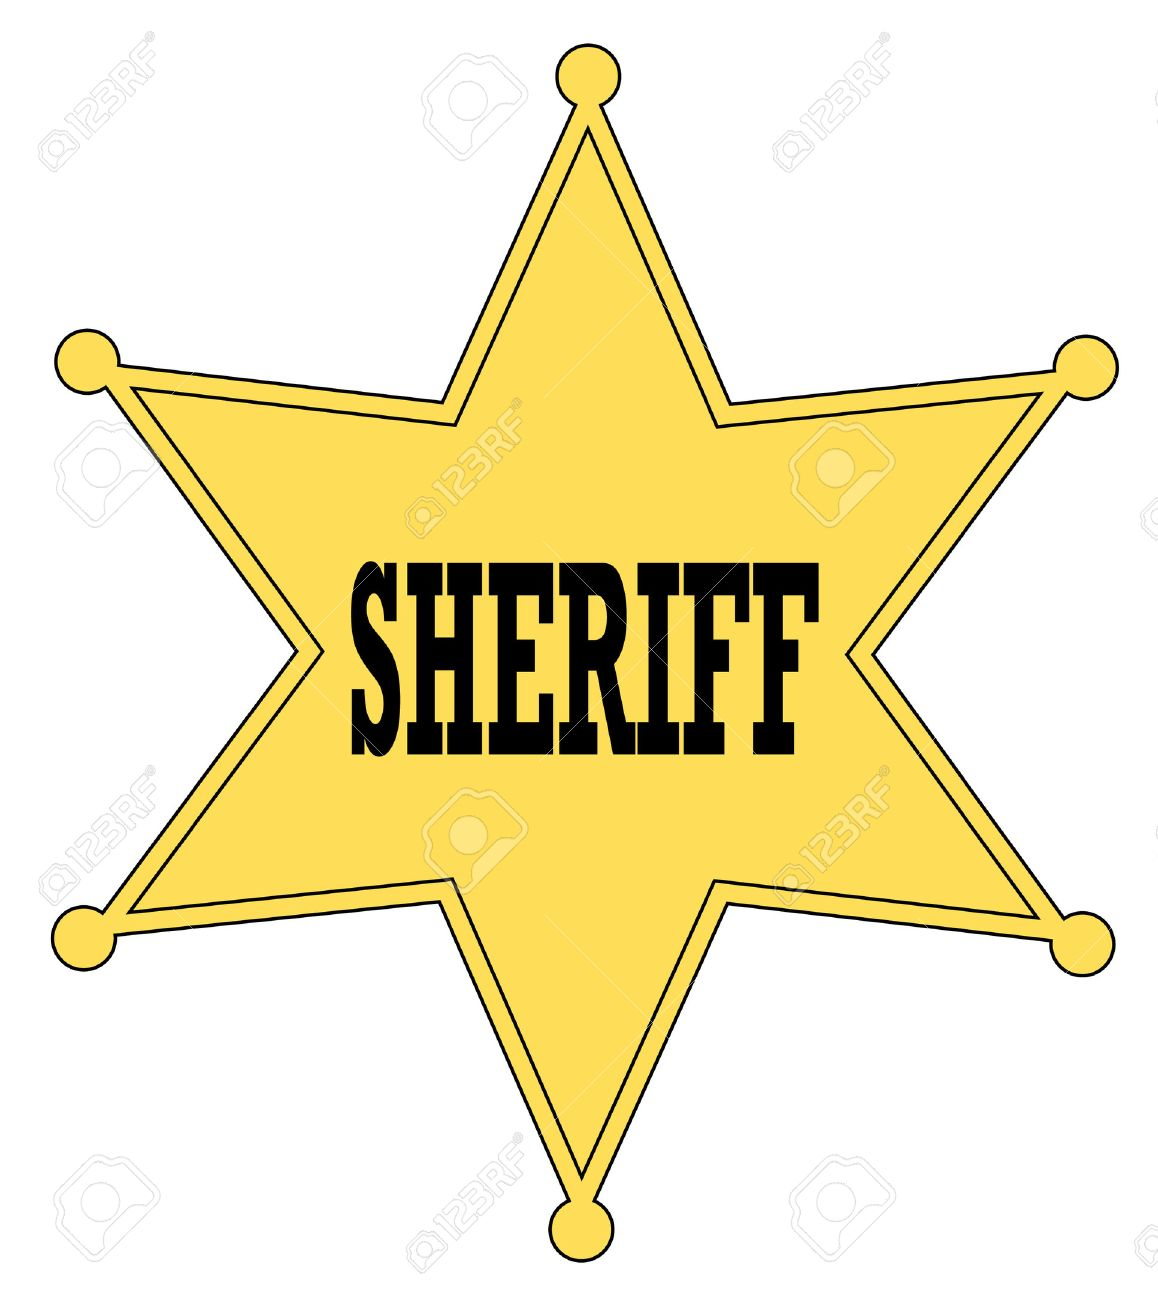 Sheriffs badge clipart 5 » Clipart Station.